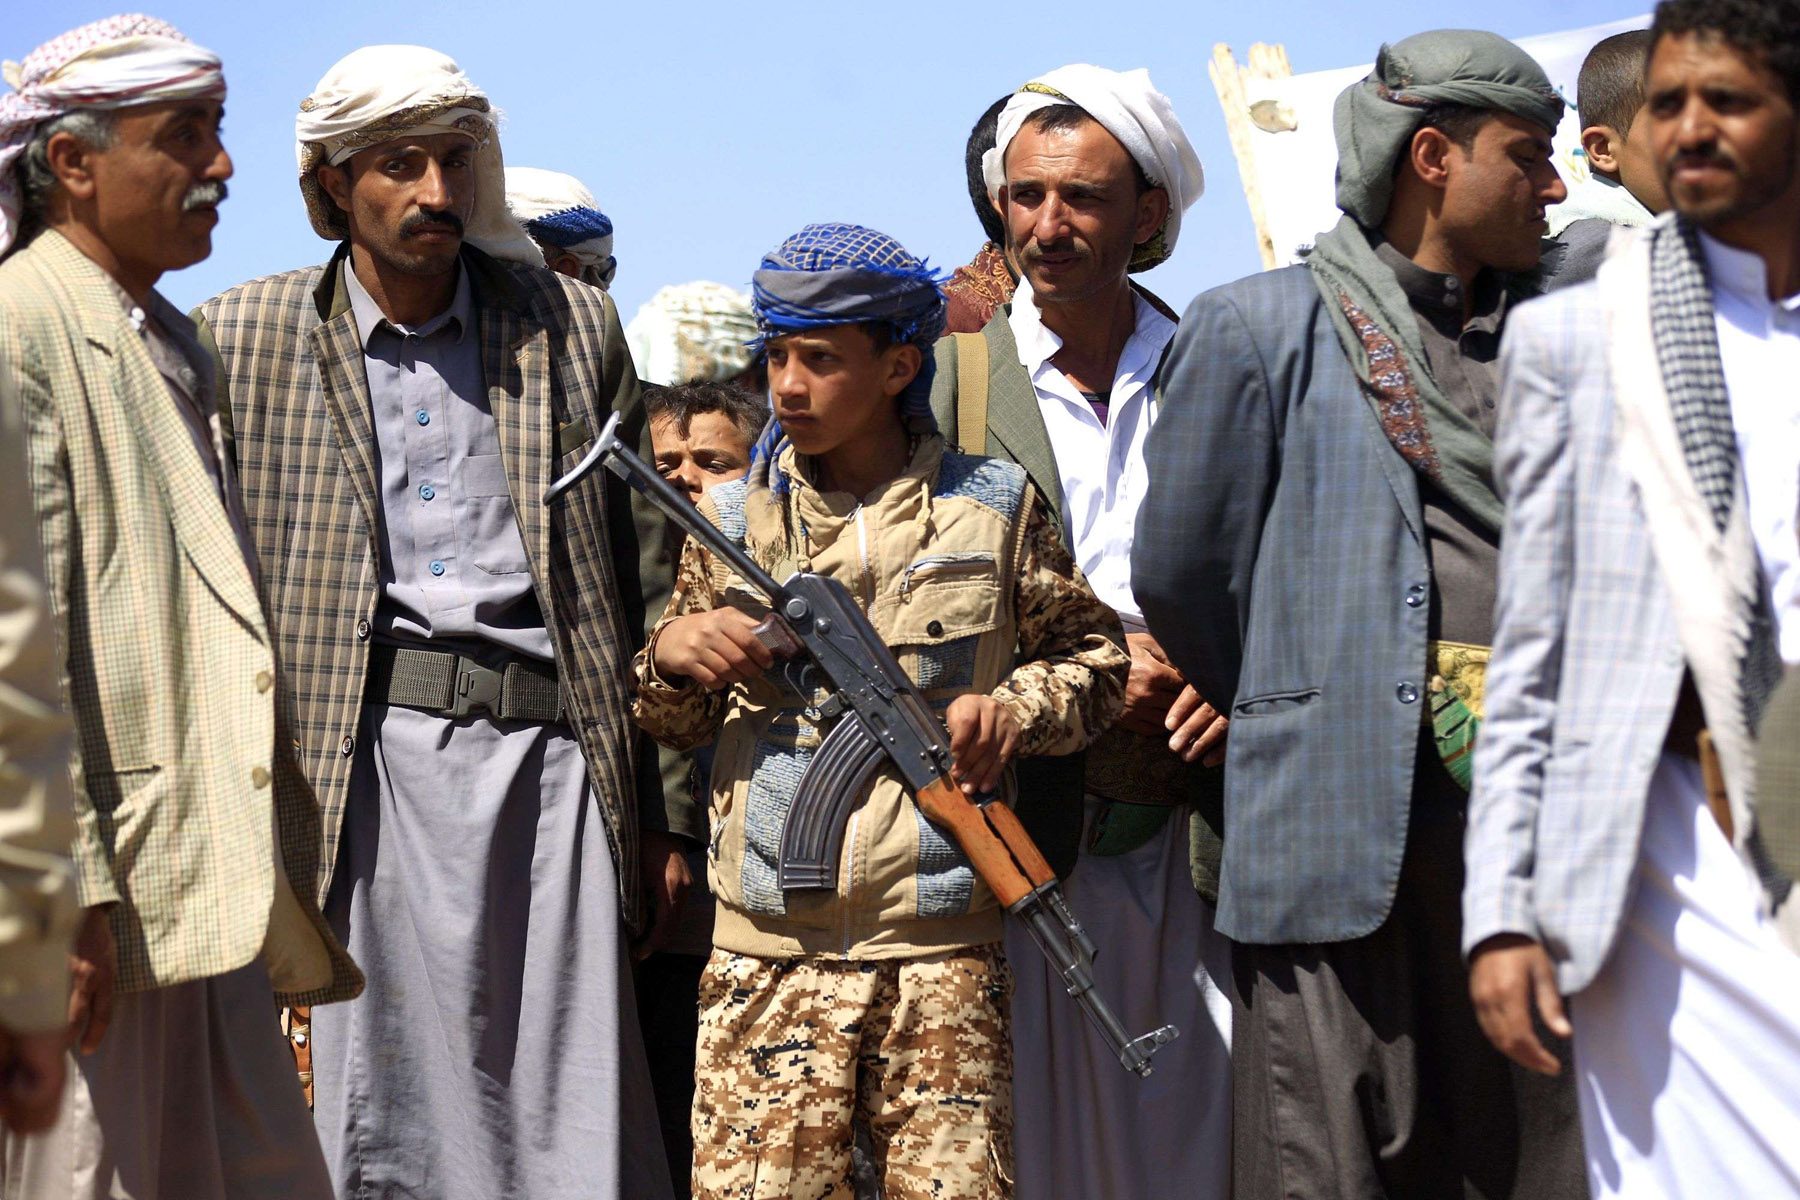 A young Yemeni holds a rifle as he takes part in a gathering near Sana'a to show support for Houthis. (AP)